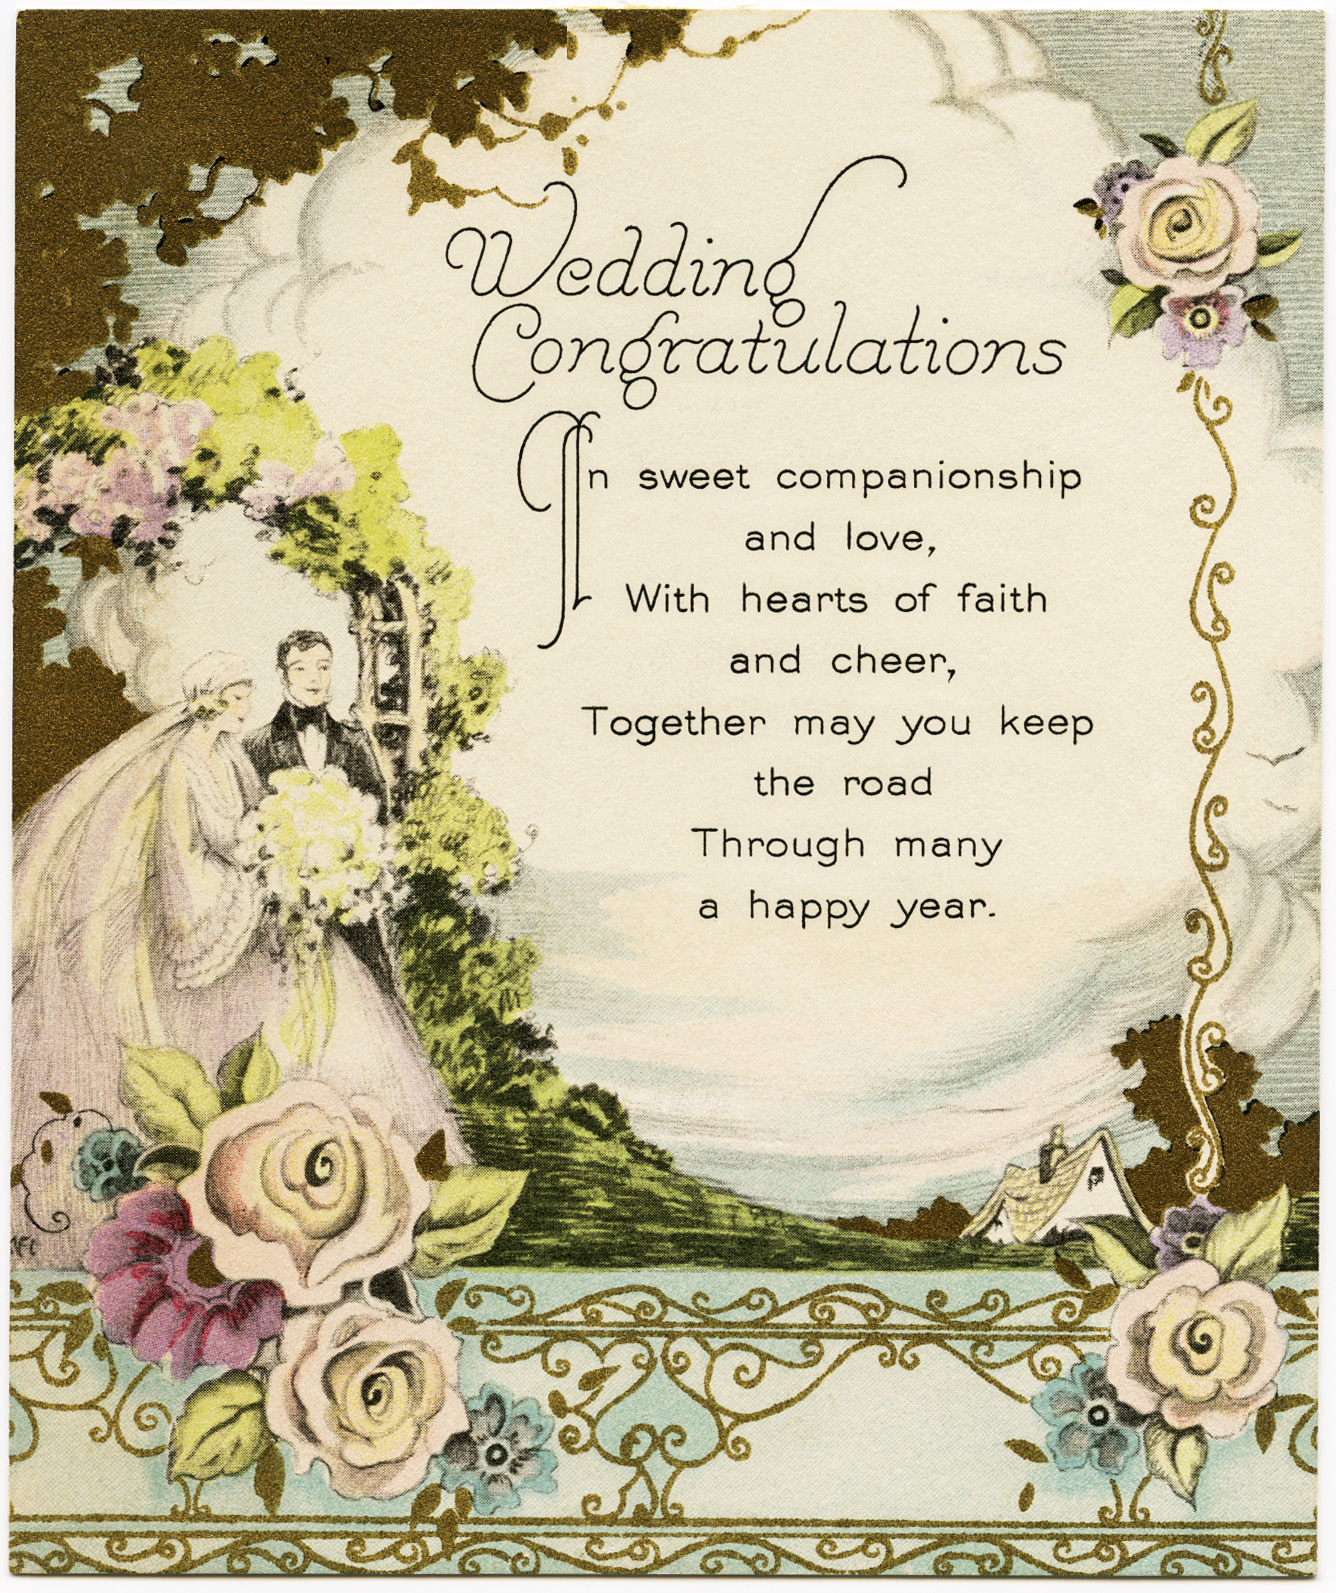 Vintage wedding congratulations old design shop blog wedding greeting card click m4hsunfo